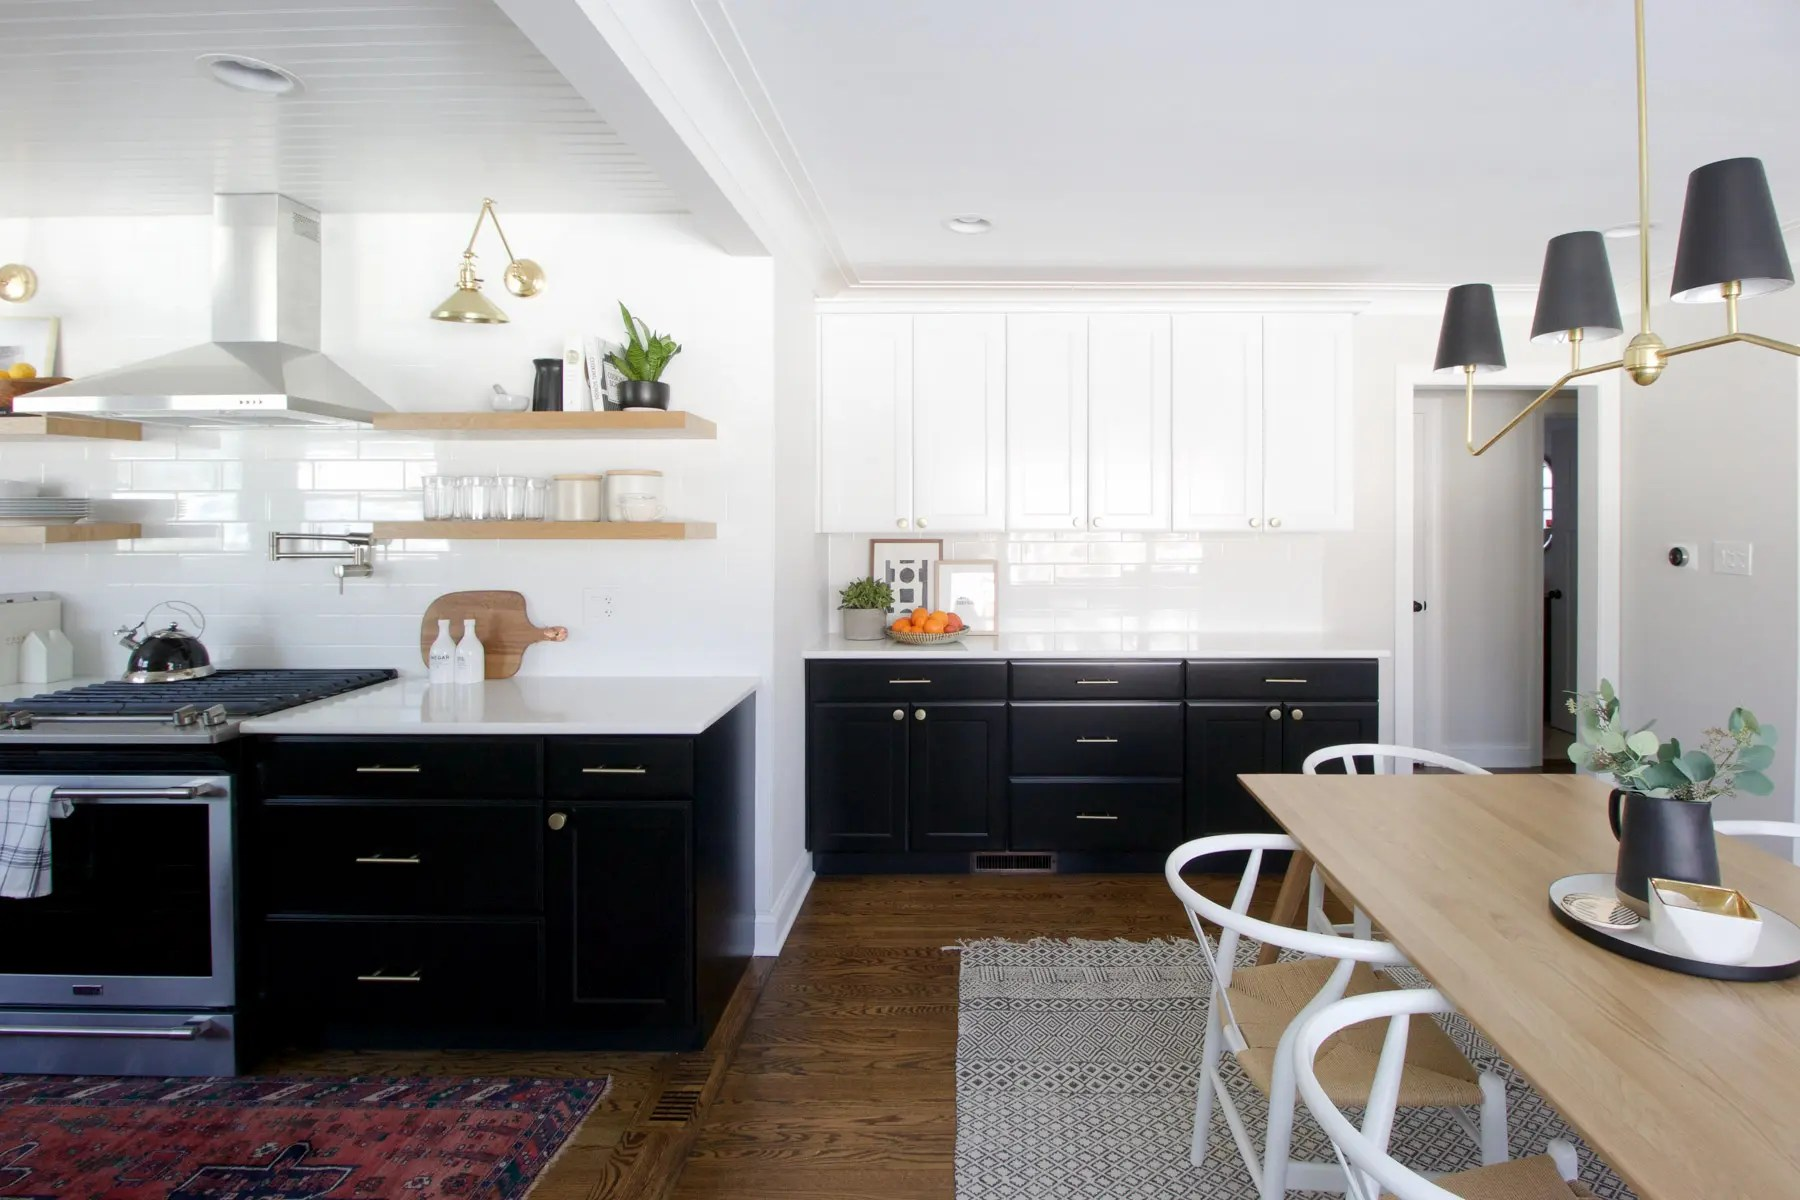 How To Clean Dark Kitchen Cabinets The Diy Playbook